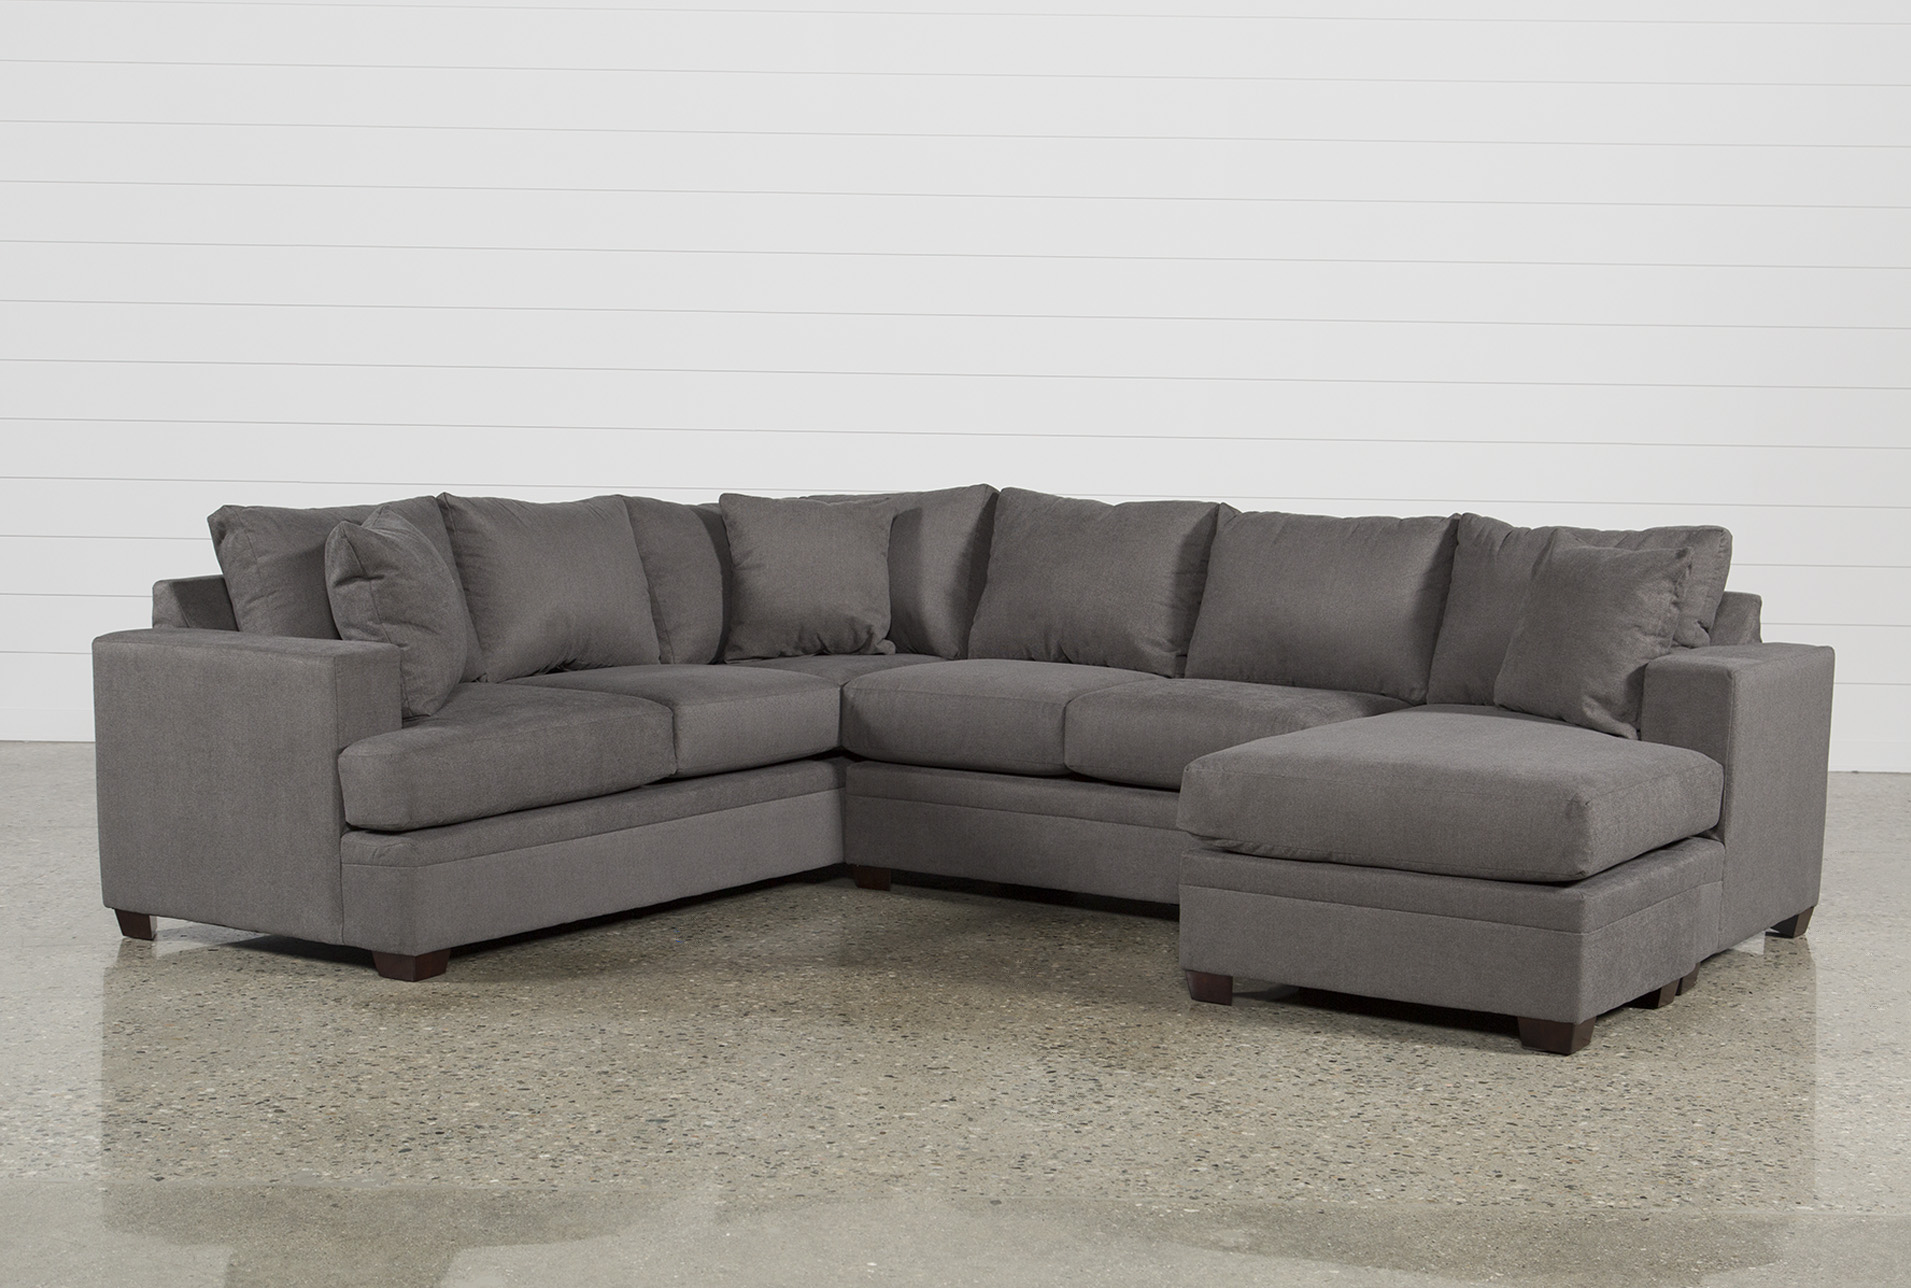 Kerri 2 Piece Sectional W/Raf Chaise | Living Spaces